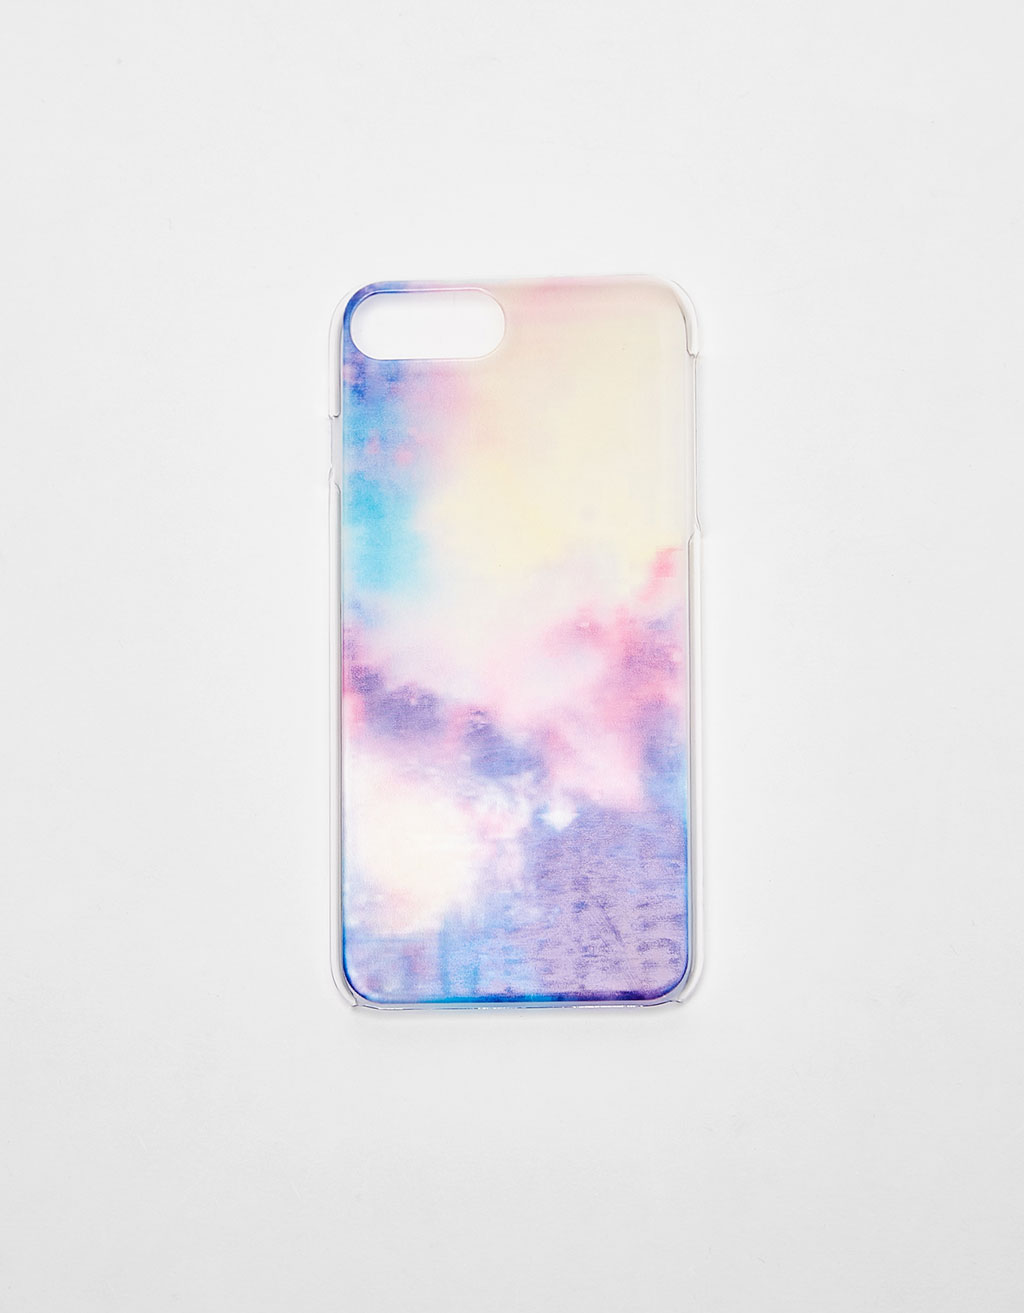 Coque motif cosmos transparente iPhone 6 plus/7 plus